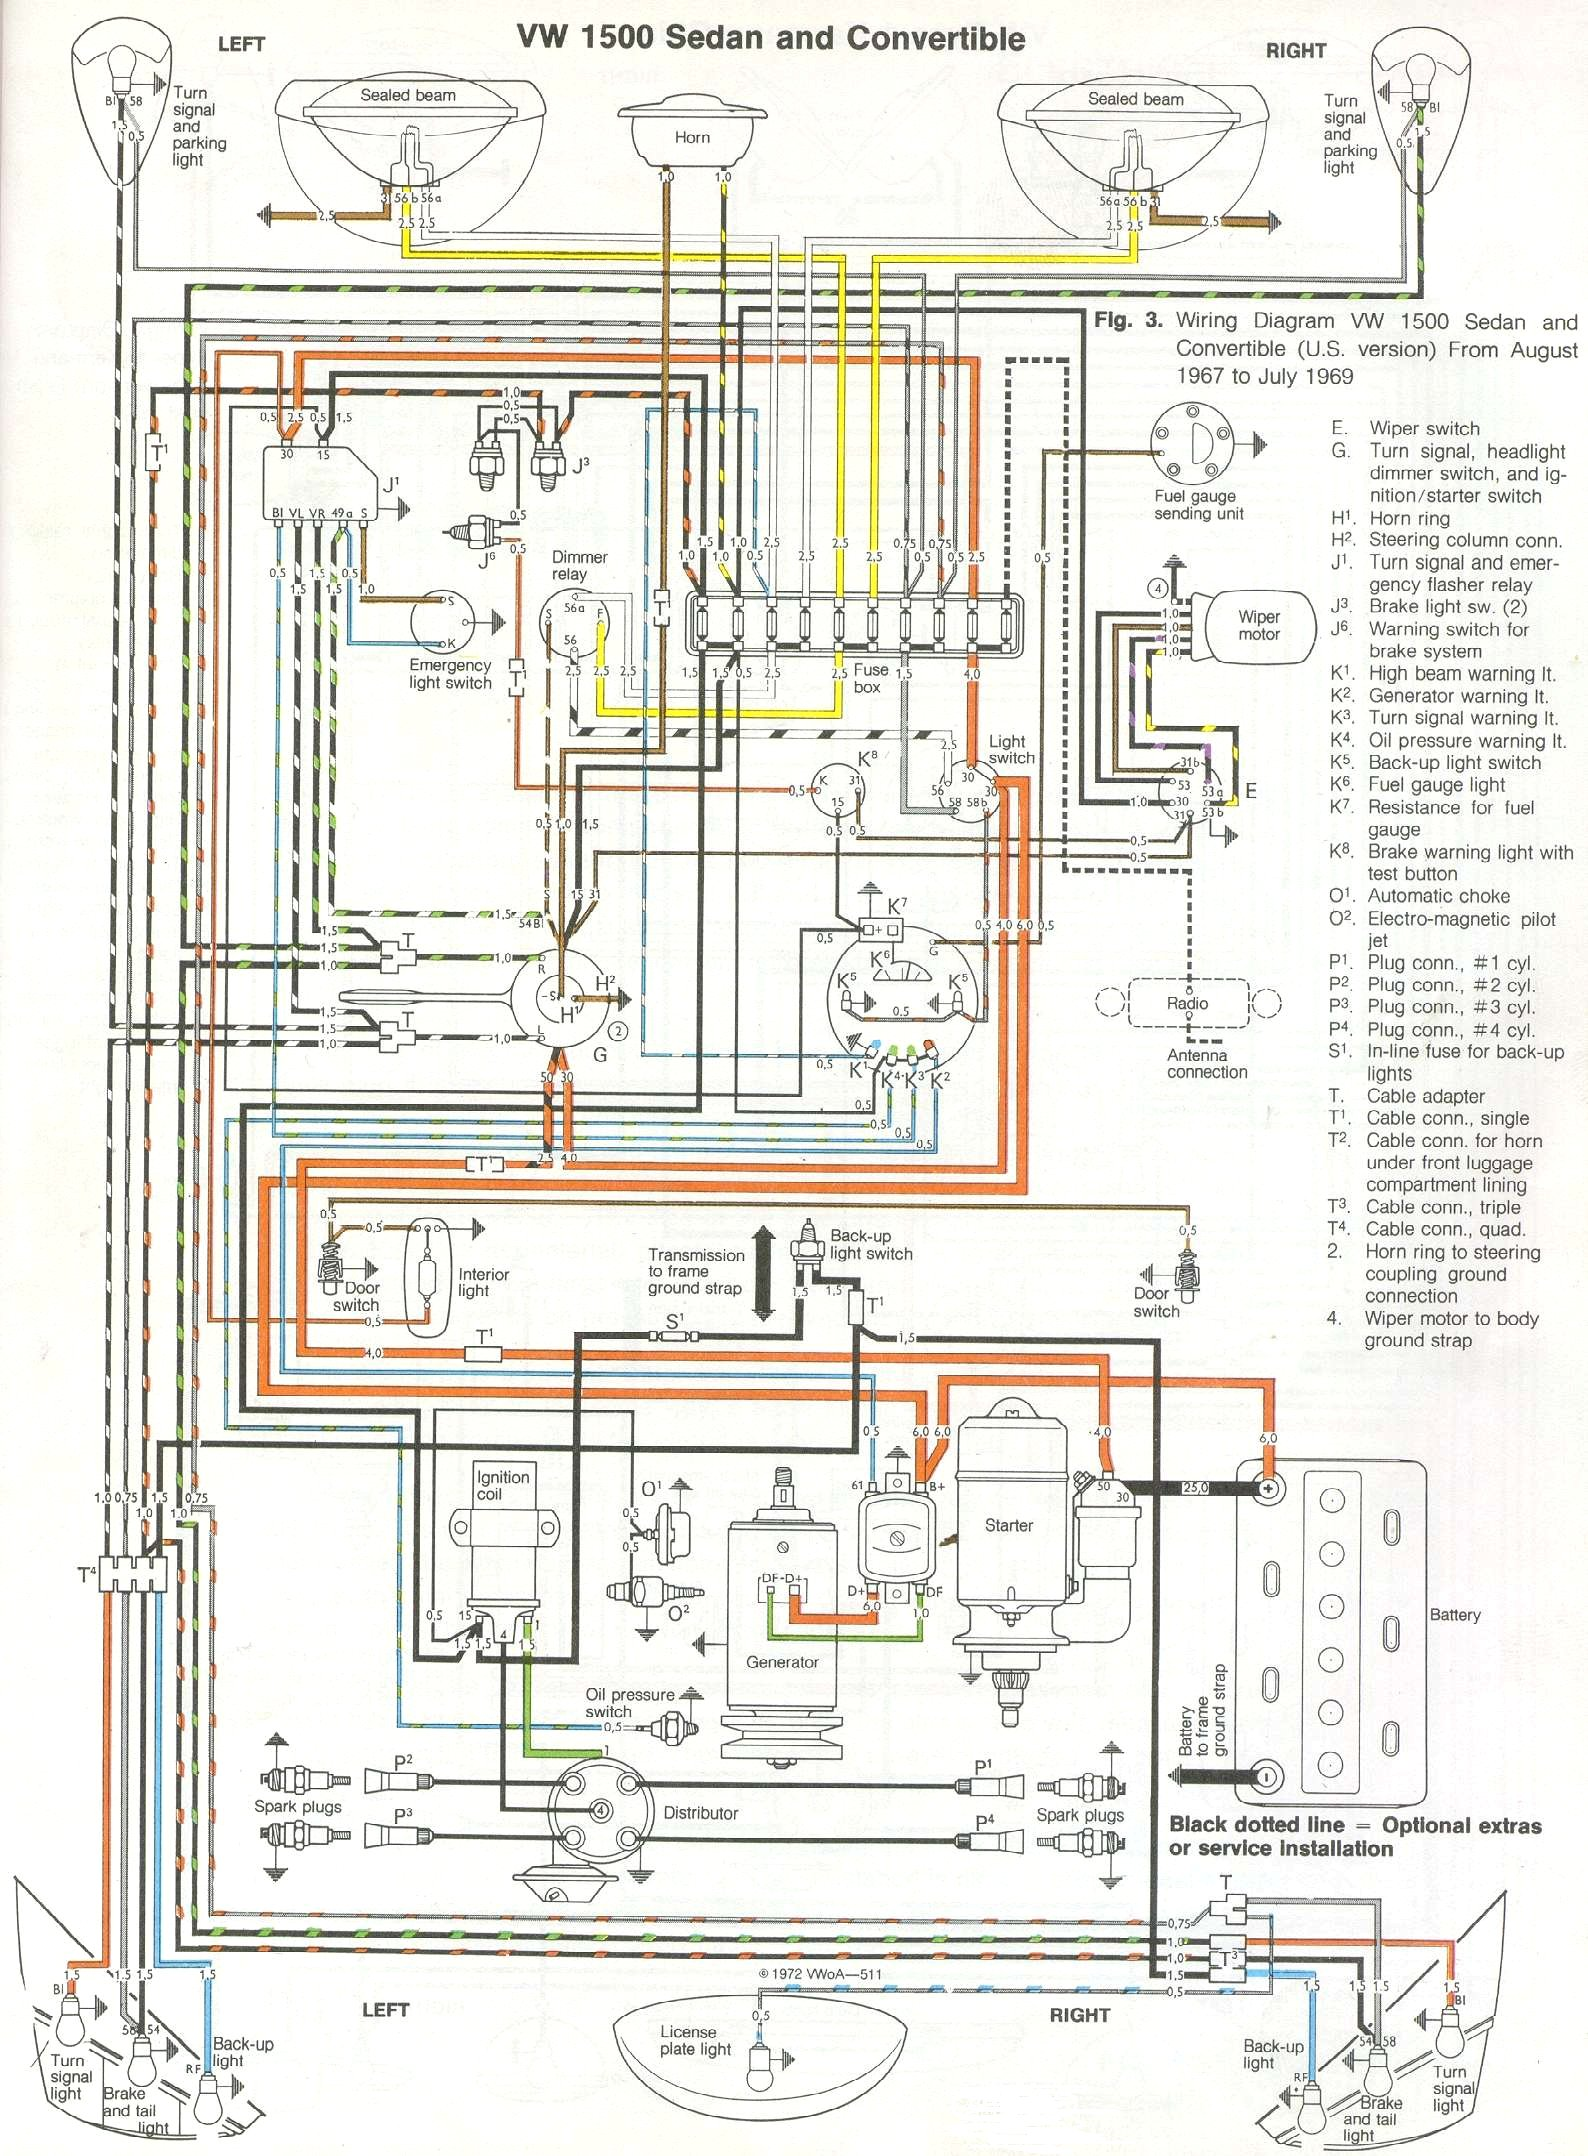 vw wiring diagram explained best wiring library rh 188 princestaash org